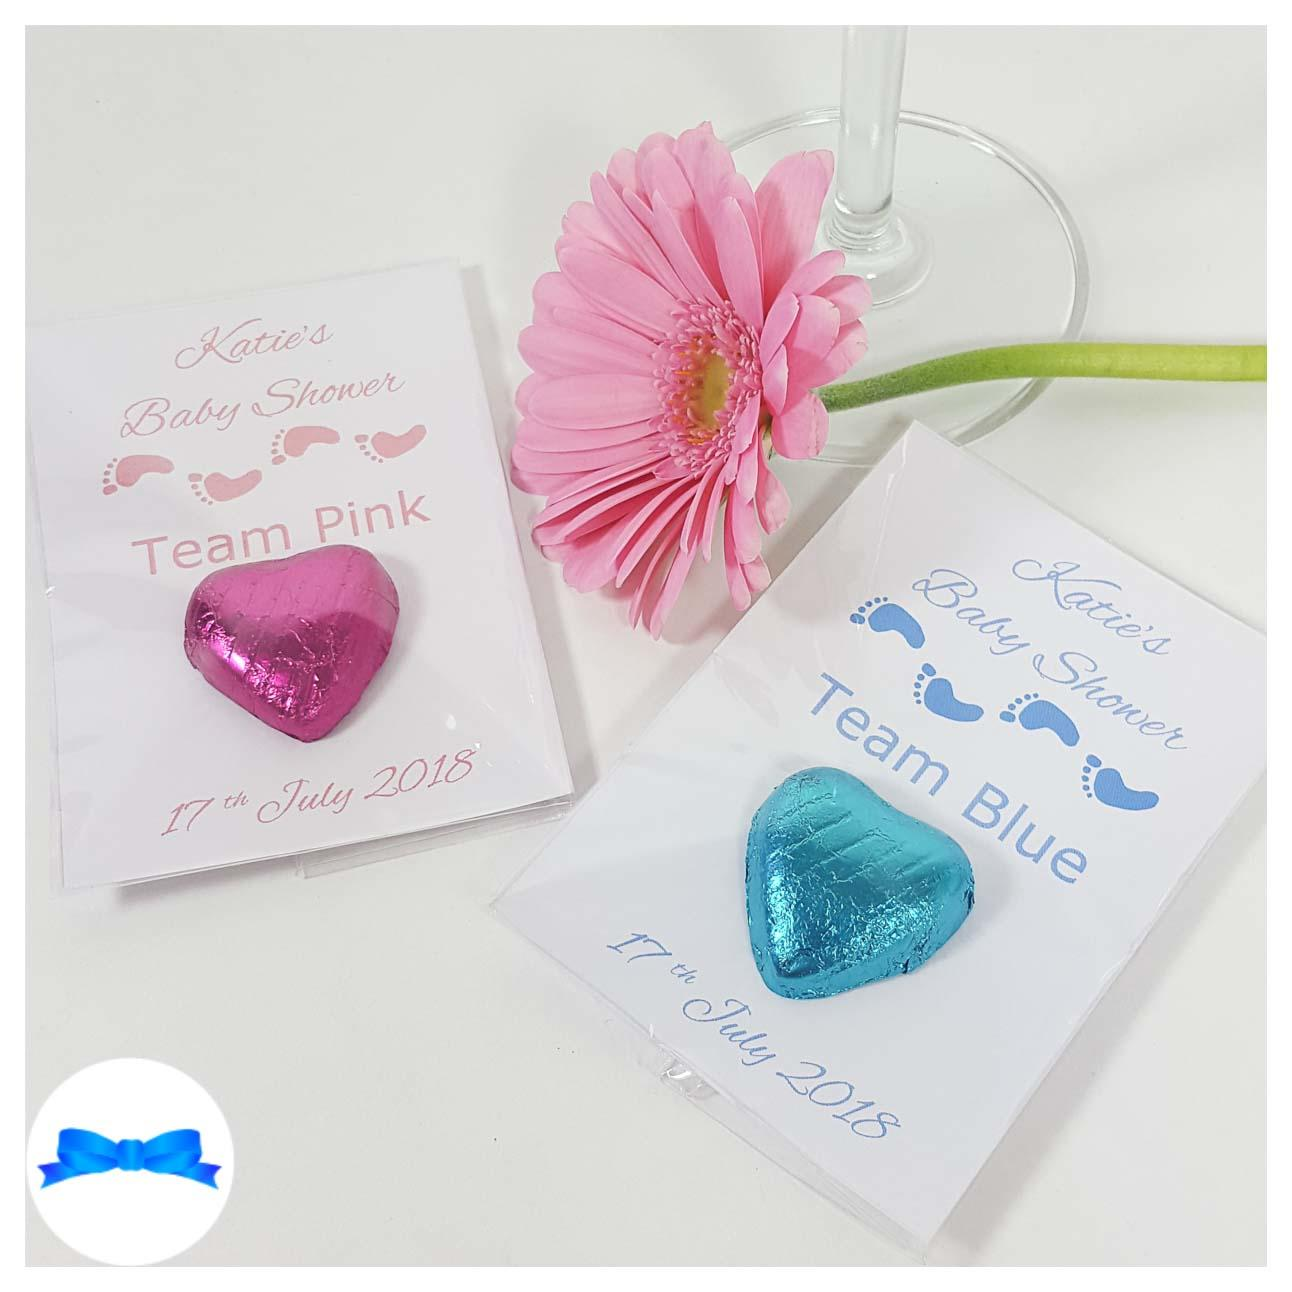 Baby shower chocolate heart favours with pink and blue baby foot prints